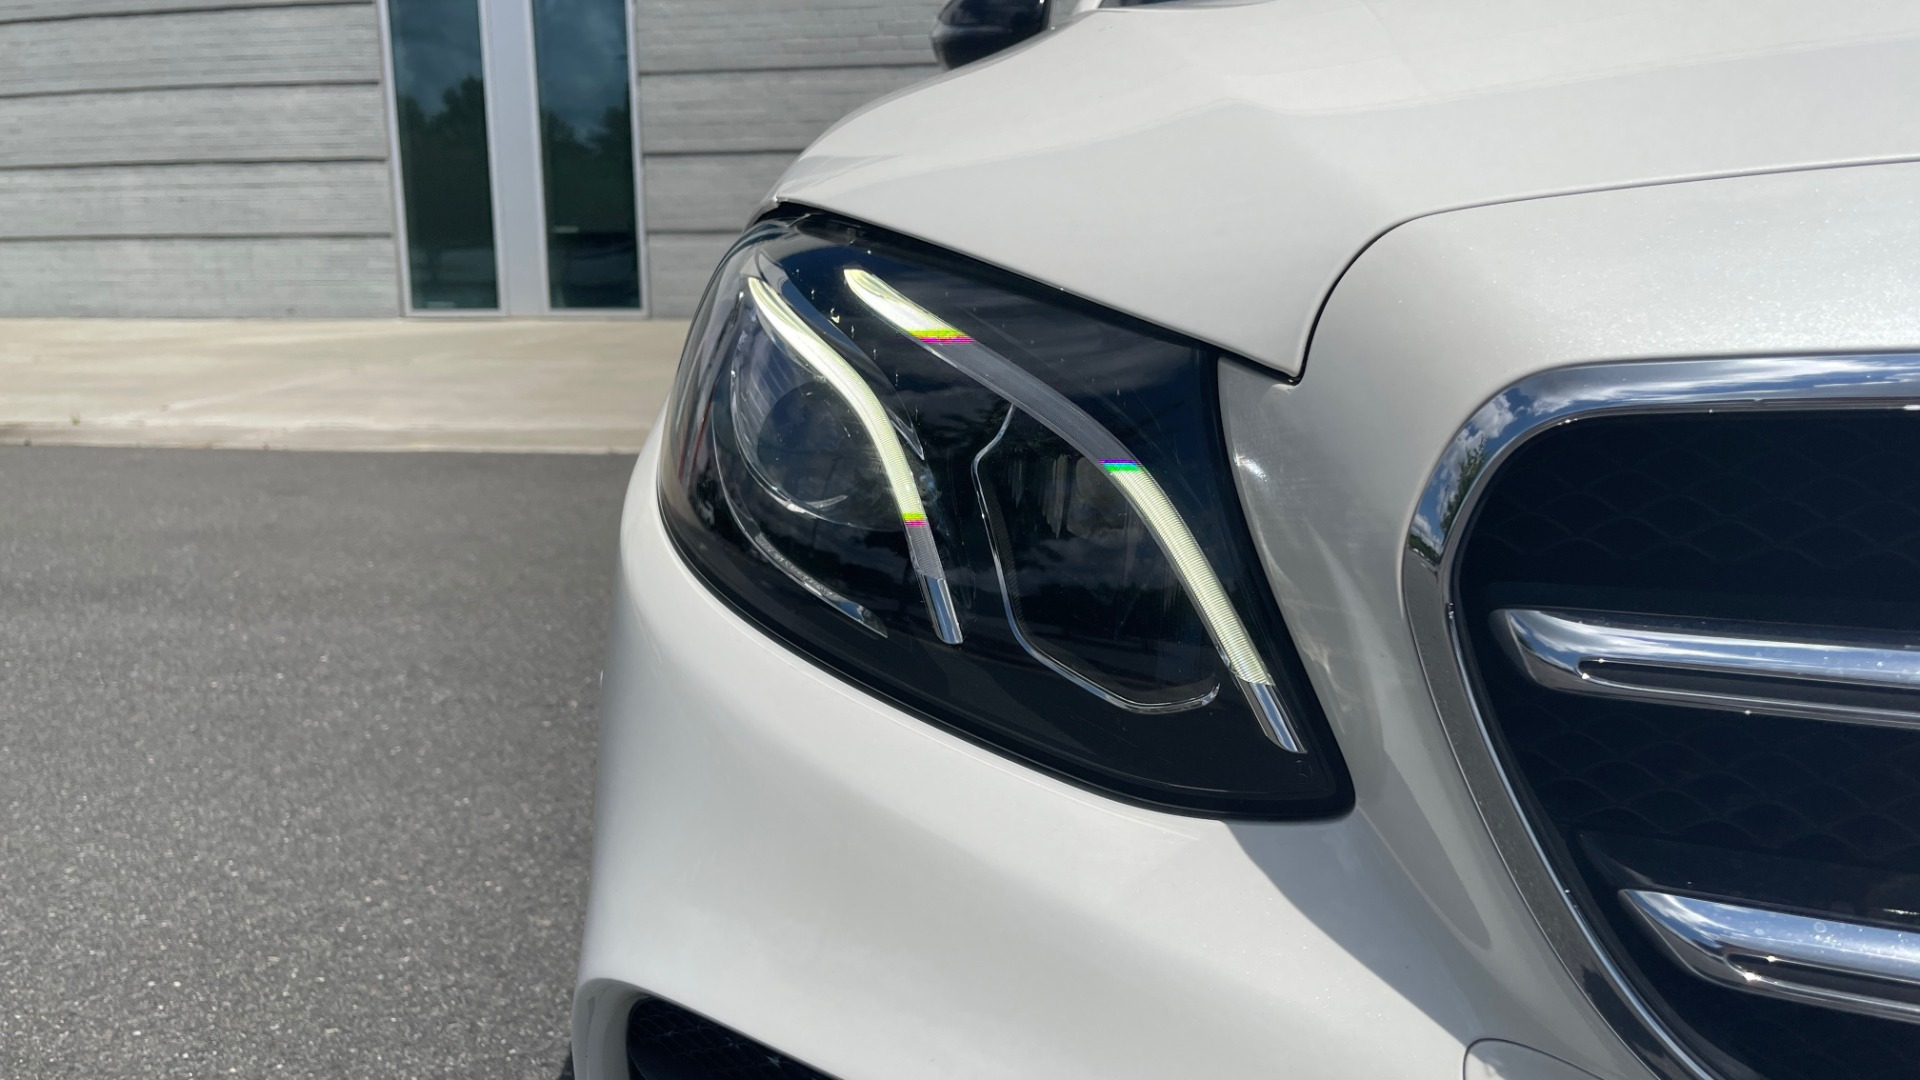 Used 2018 Mercedes-Benz E-CLASS E 300 PREMIUM / NIGHT PKG / PANO-ROOF / BURMESTER / REARVIEW for sale $42,399 at Formula Imports in Charlotte NC 28227 14